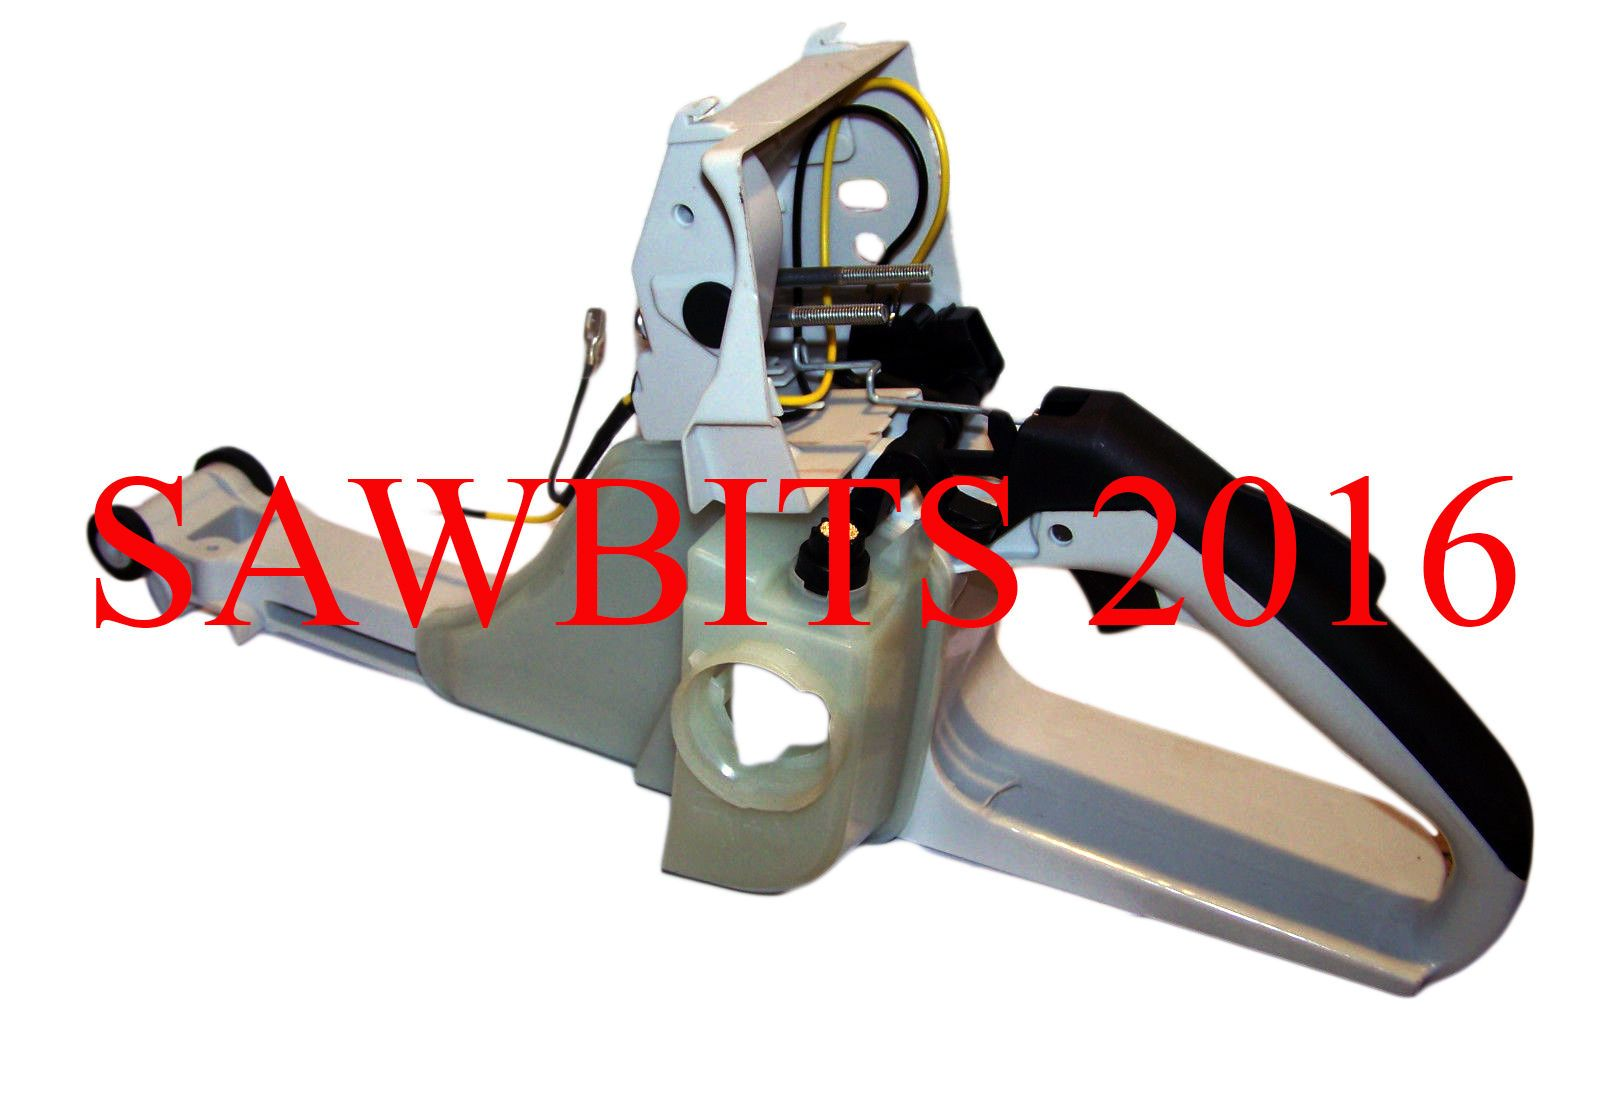 Stihl Chainsaw New Ms660 044 046 Safety Trigger Replaces Ms 441 Diagram 028 Carburetor 025 Compatible Ms460 Ms461 Fuel Tank Rear Handle As Photo 1128 350 0850